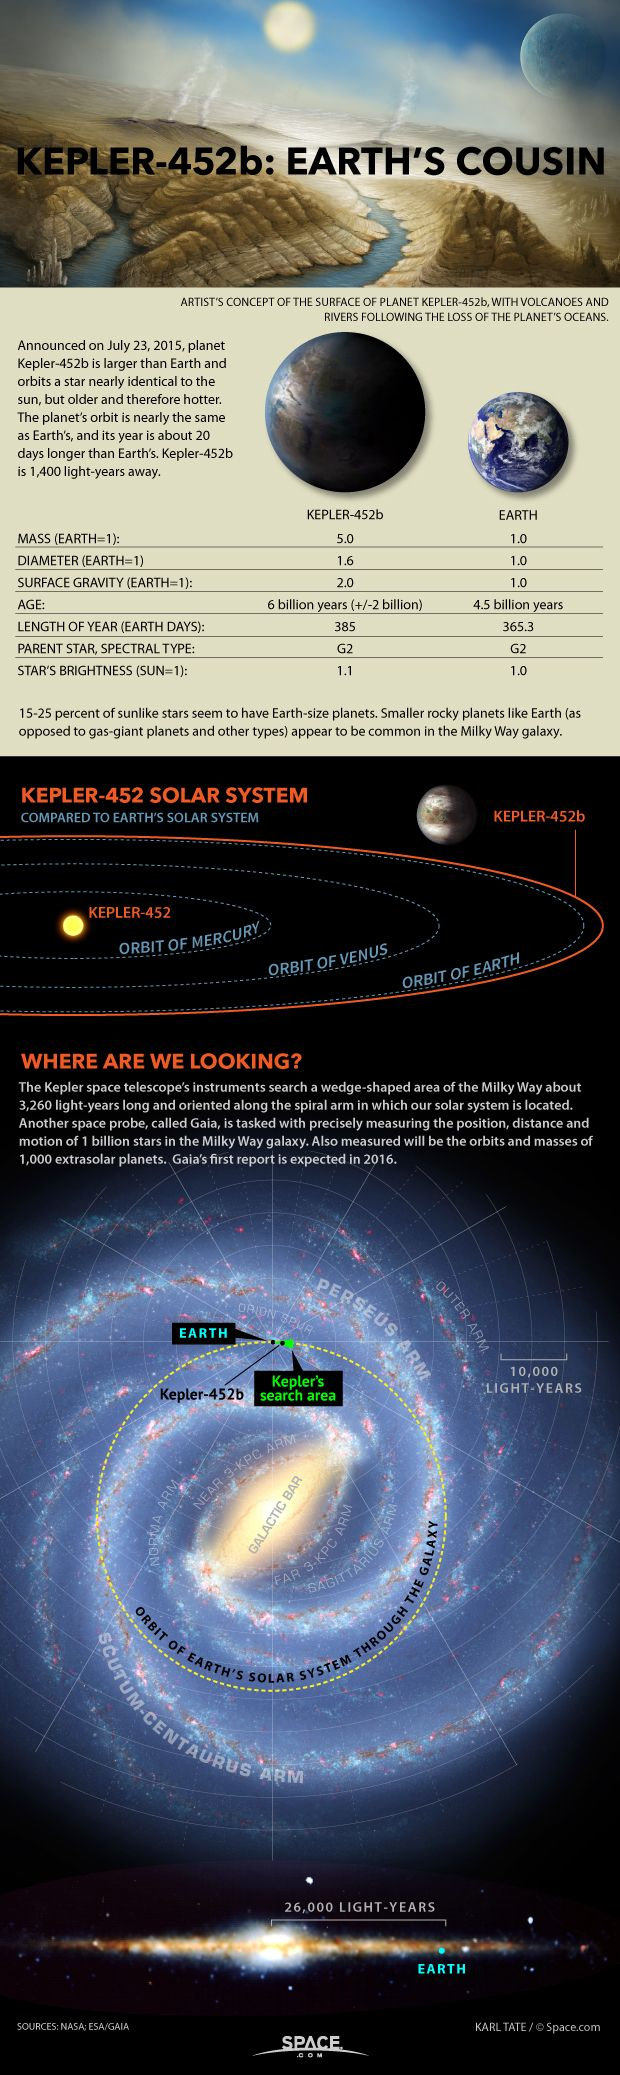 Astronomers have announced the discovery of planet Kepler-452b, orbiting a star very much like the sun but older and hotter.